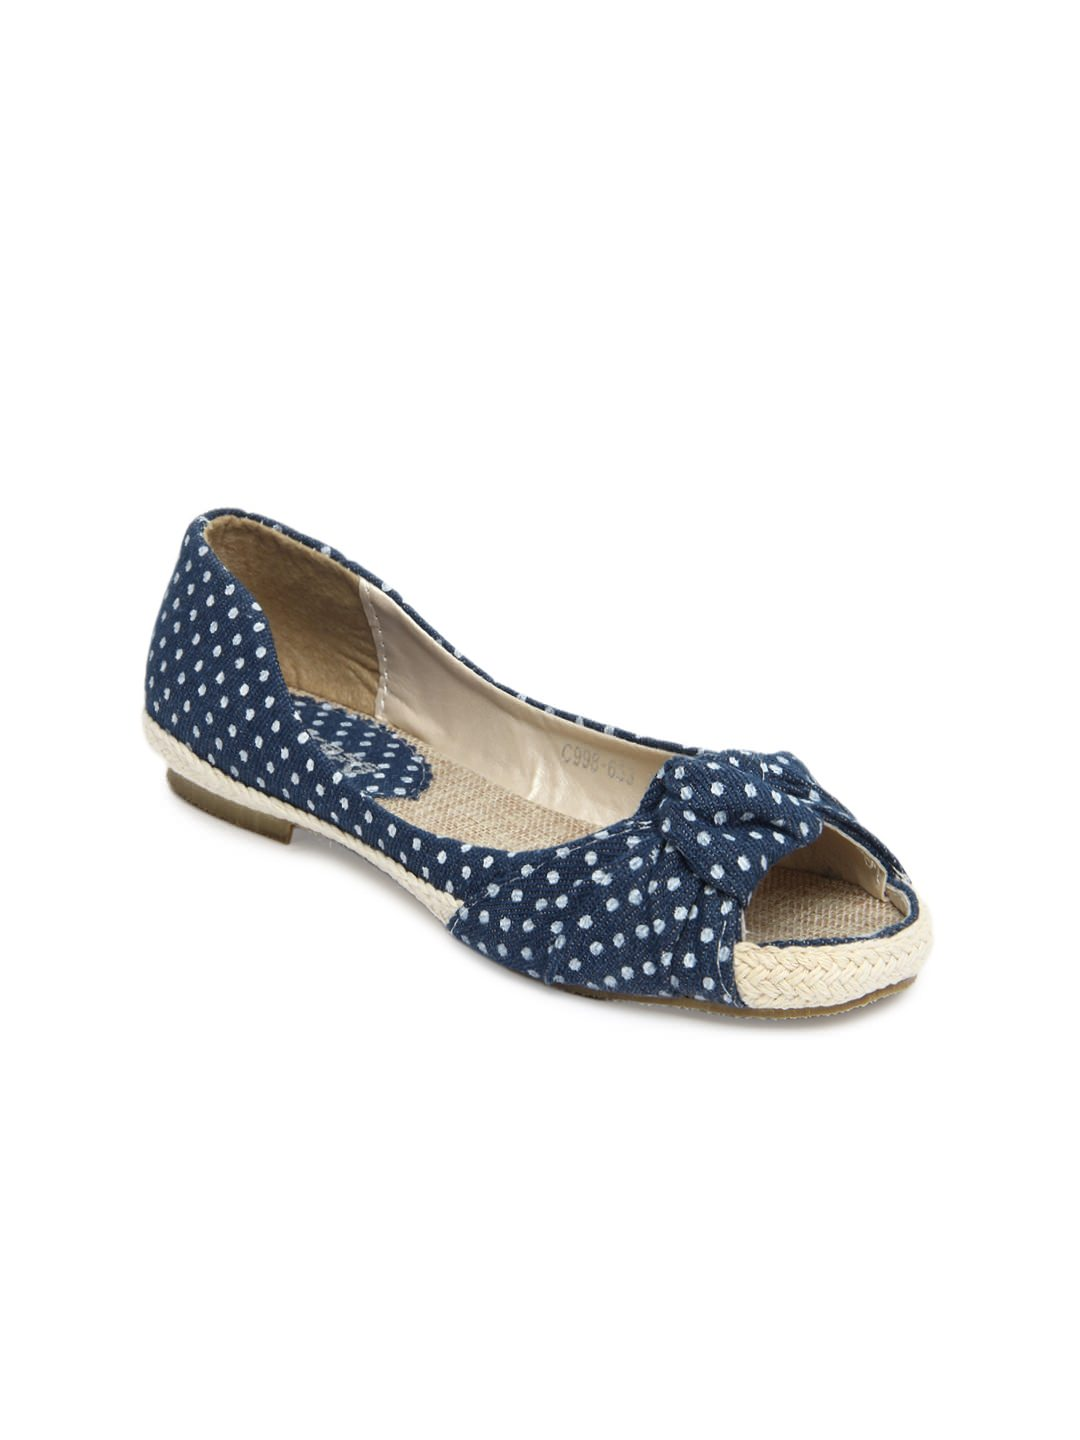 Buy DressBerry women blue flat shoes atRs.879